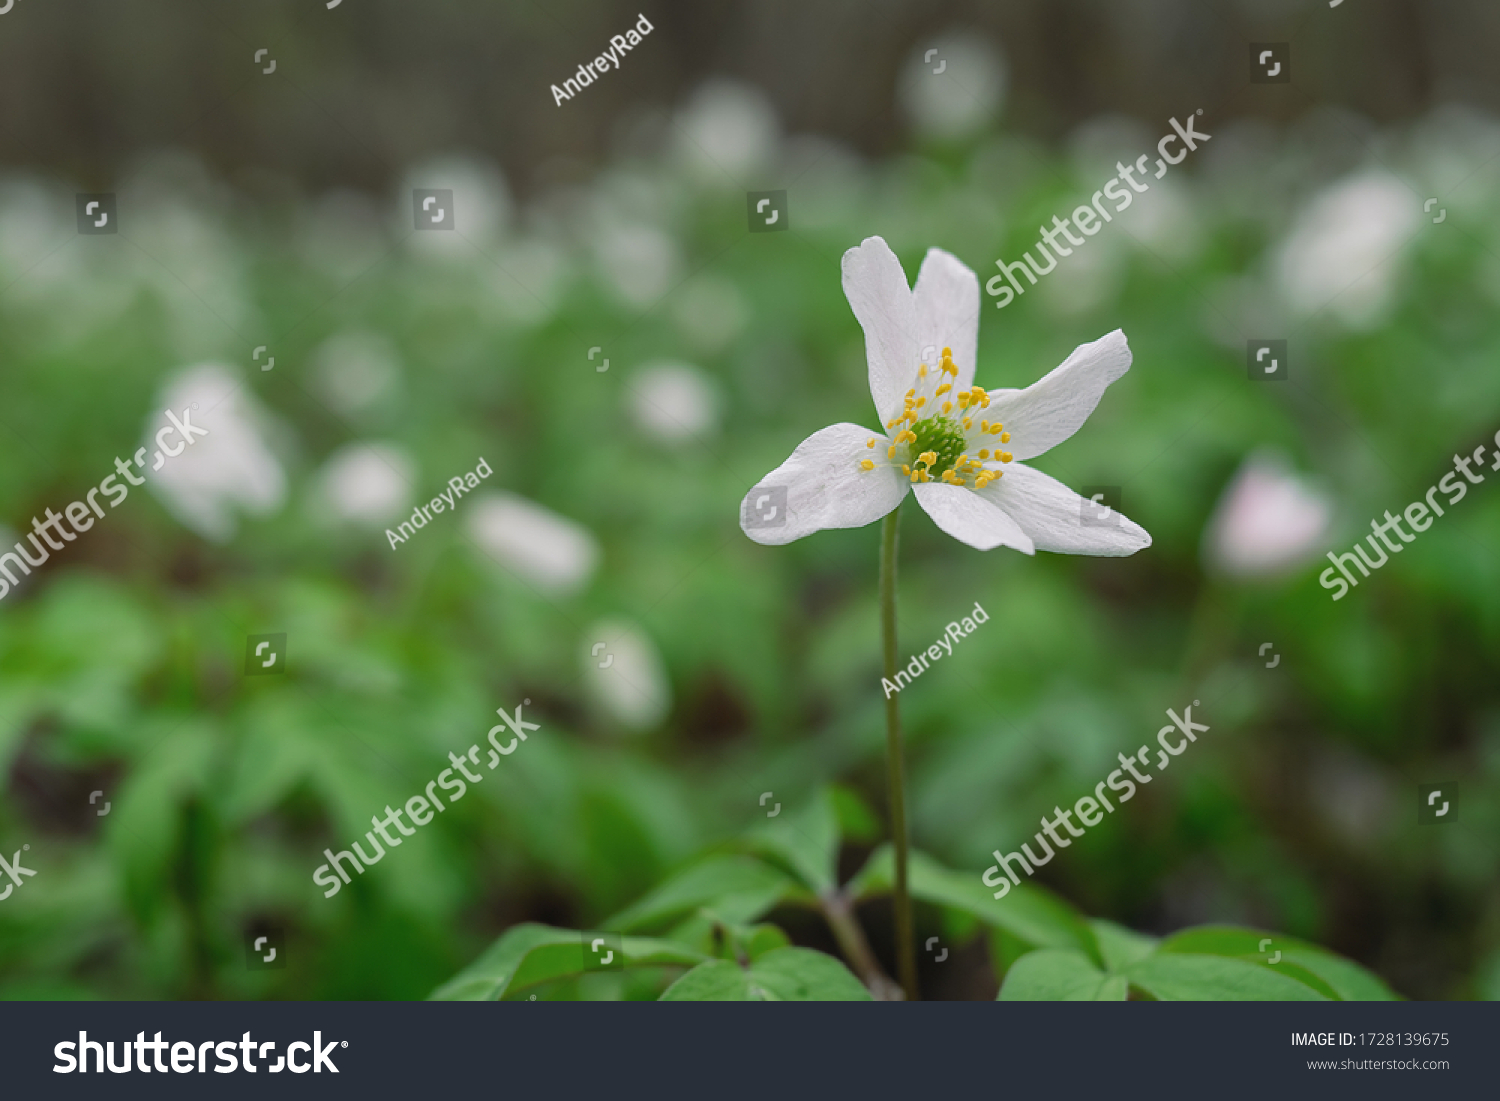 Field of snowdrops. White snowdrops. Snowdrop flowers grow in the forest. Snowdrops after rain. Flowers in the forest. Flowers after rain. Dew on flowers #1728139675